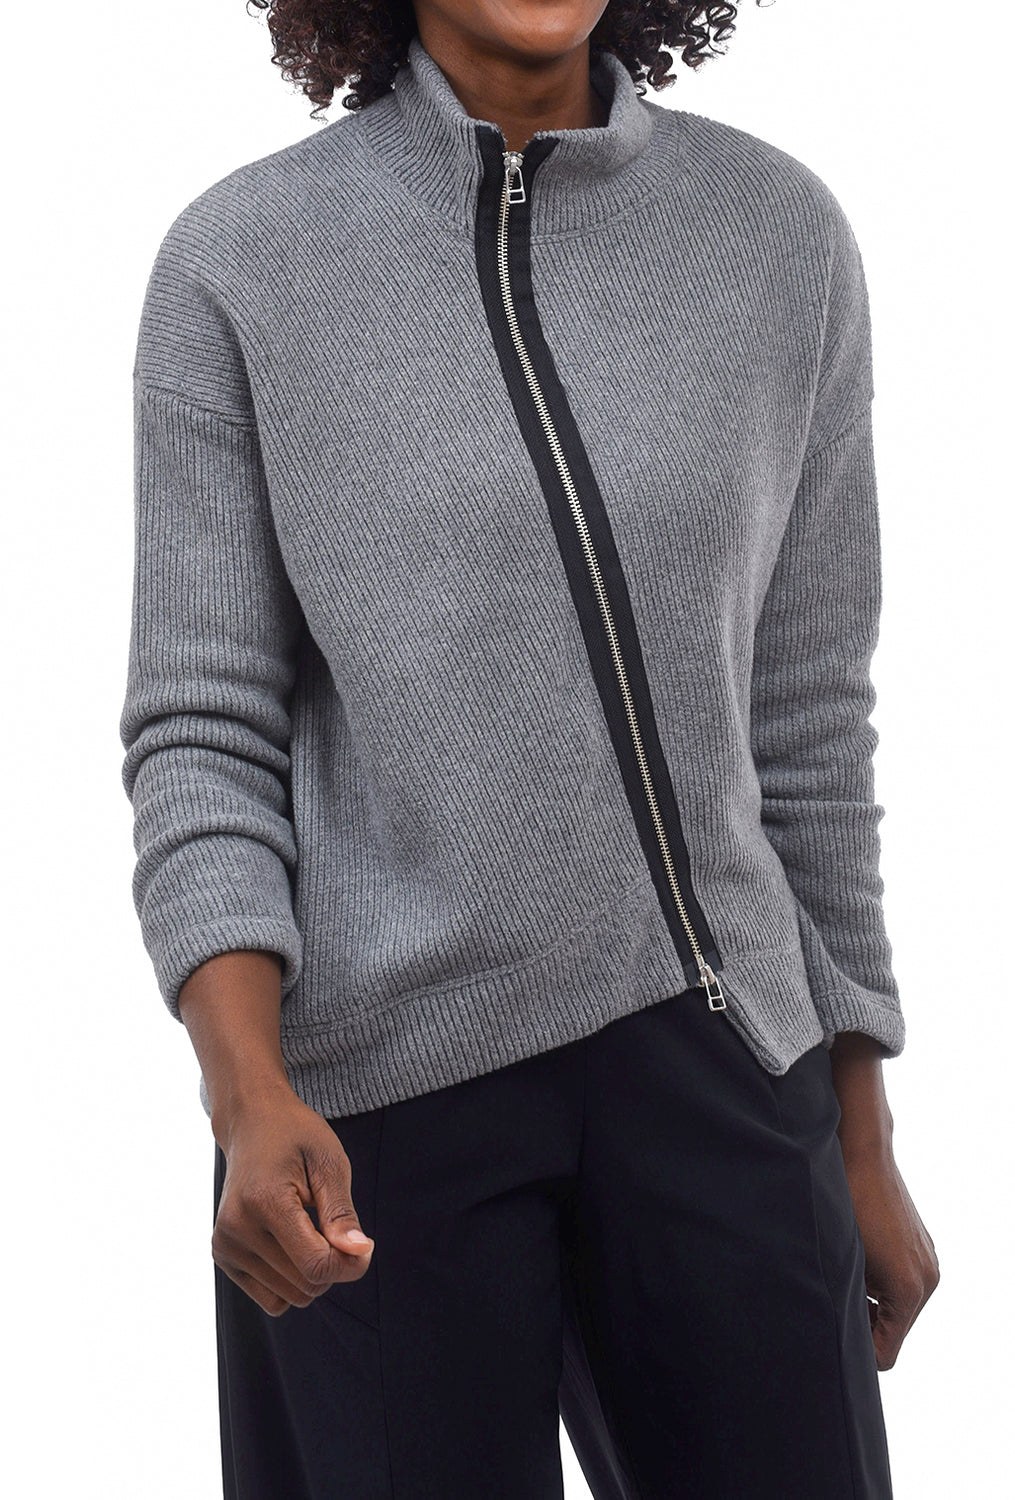 Veronique Miljkovitch Roxy Jacket, Gray